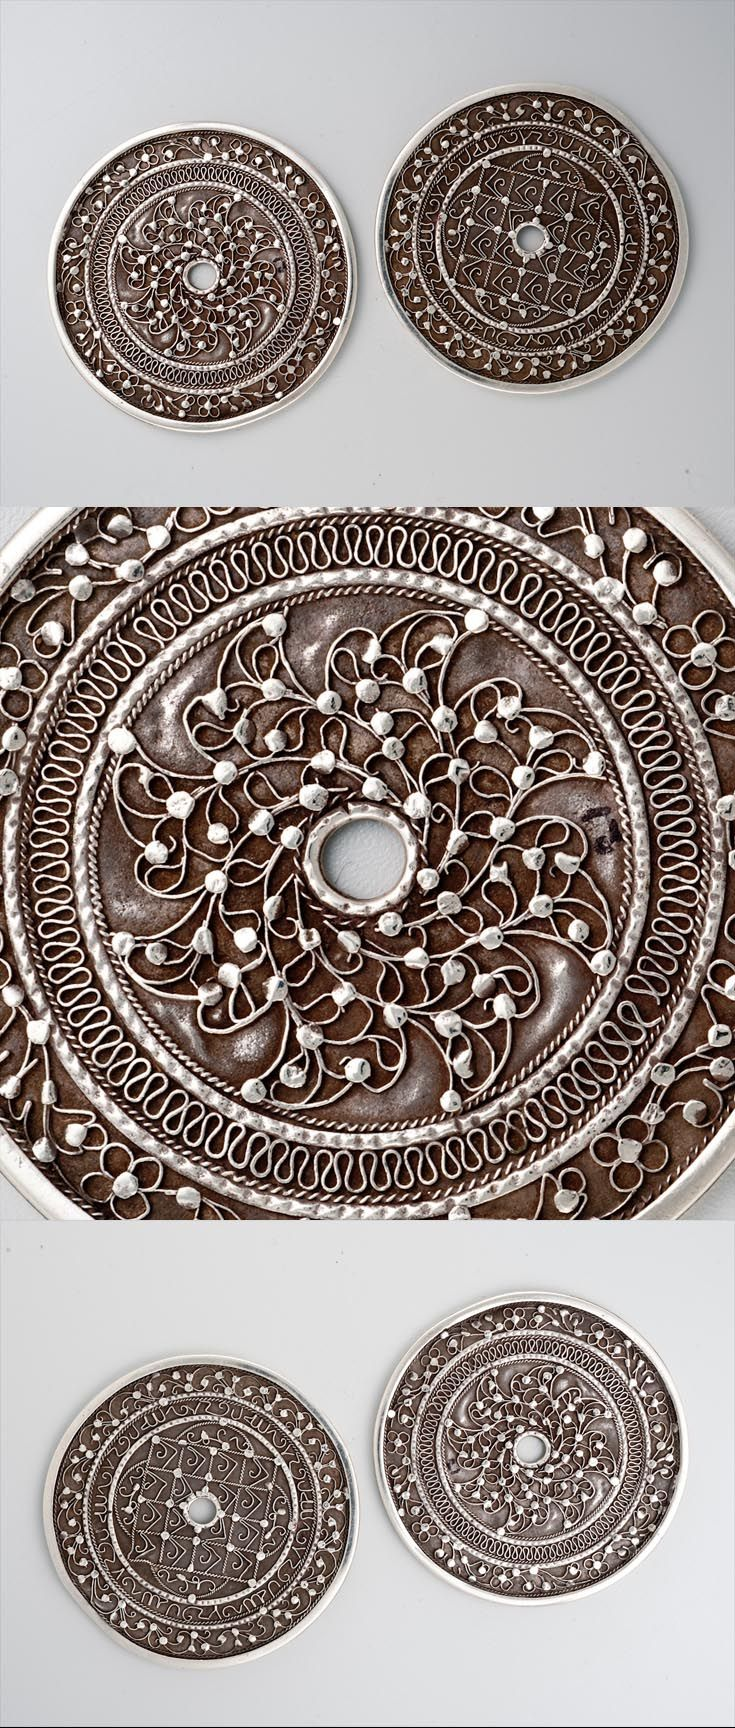 Indonesia - Sulawesi   Pair of pendant discs ~ Kawari ~ from the Bugis people; silver   ca. early 20th century    POR